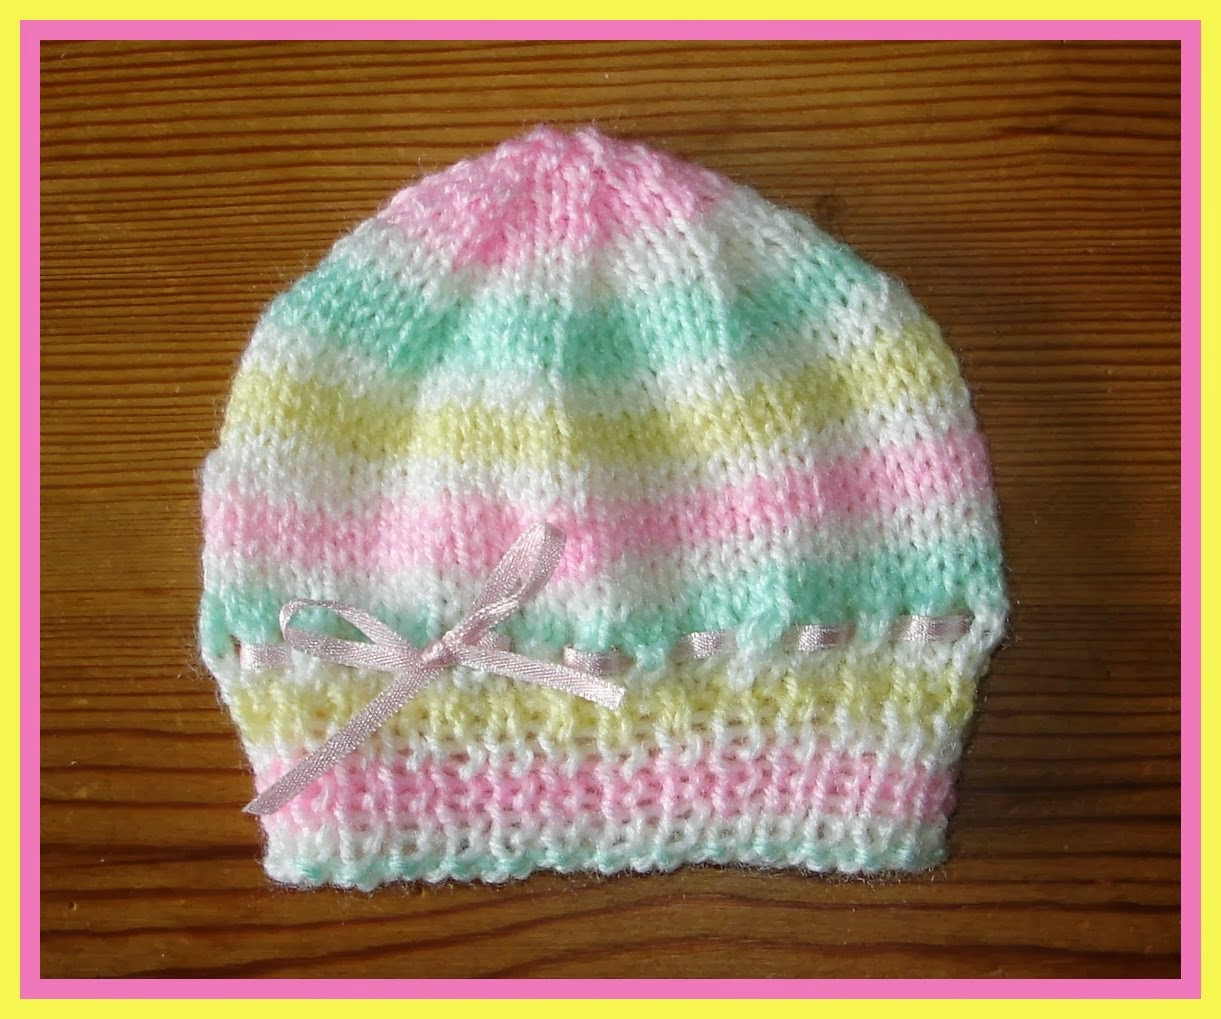 Knitted Baby Hats Luxury Marianna S Lazy Daisy Days Candystripe Knitted Baby Hats Of Awesome 41 Images Knitted Baby Hats